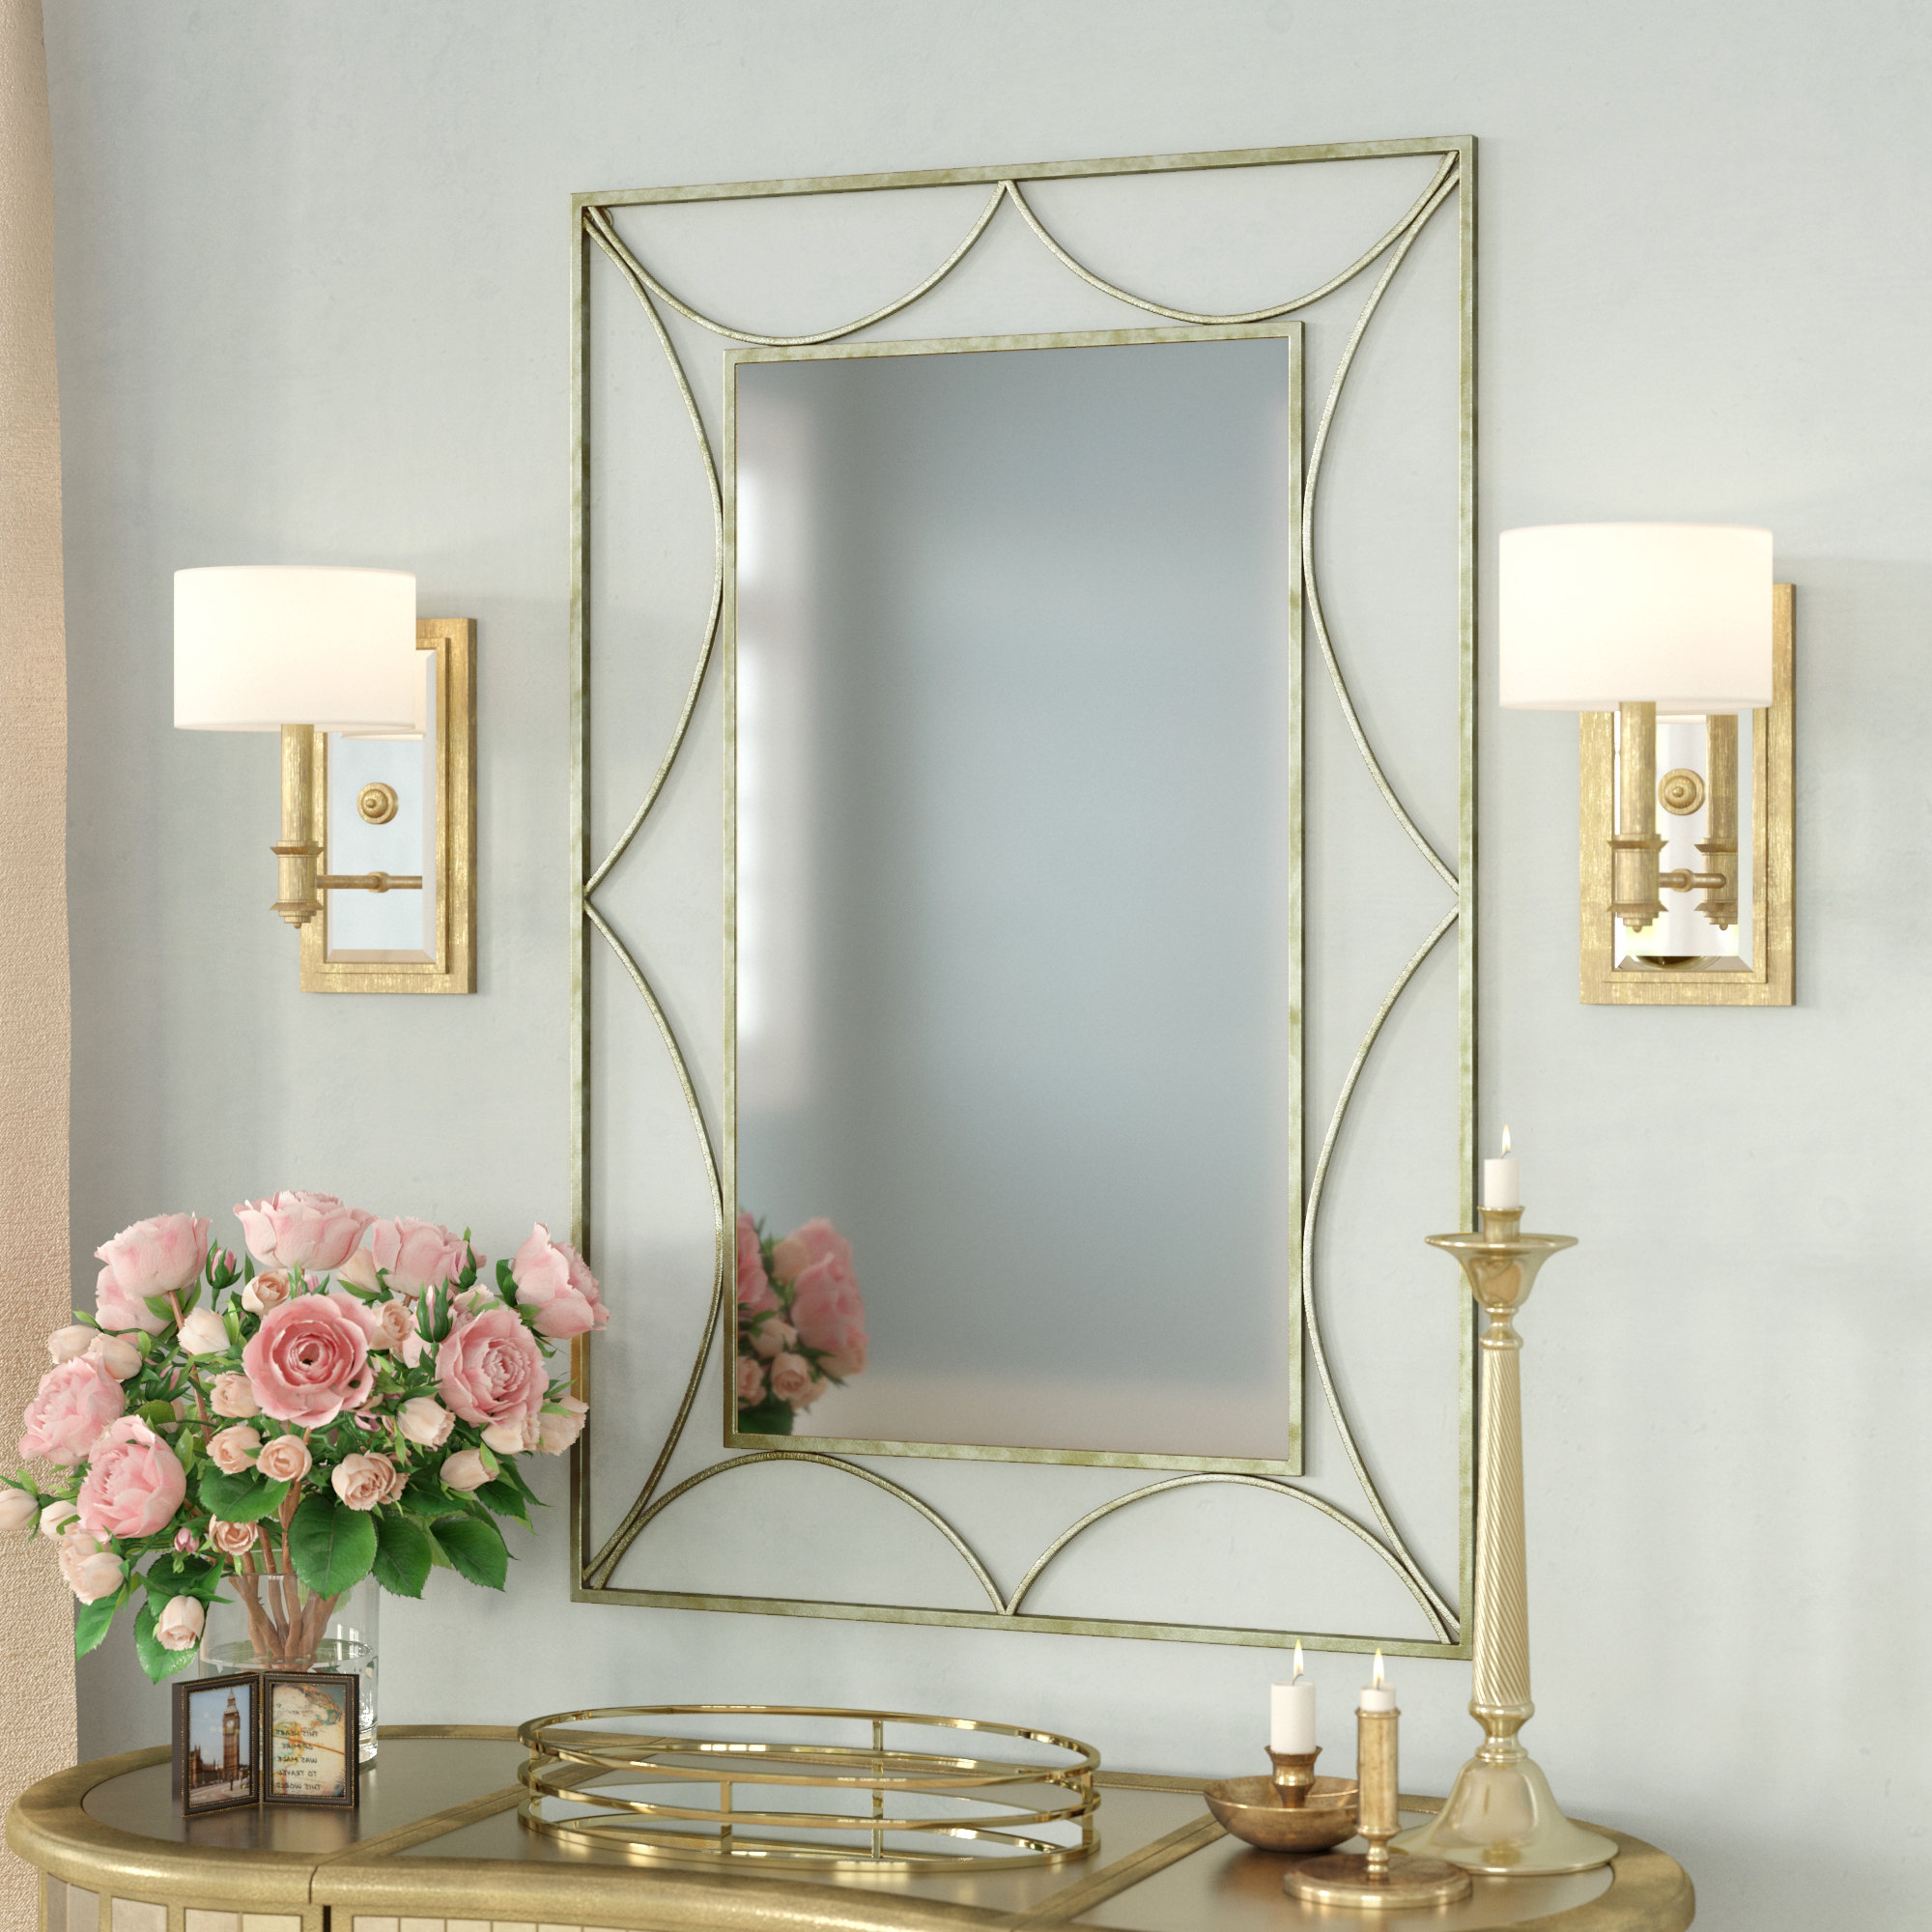 Ellesmere Wall Accent Mirror Intended For Best And Newest Ulus Accent Mirrors (Gallery 15 of 20)